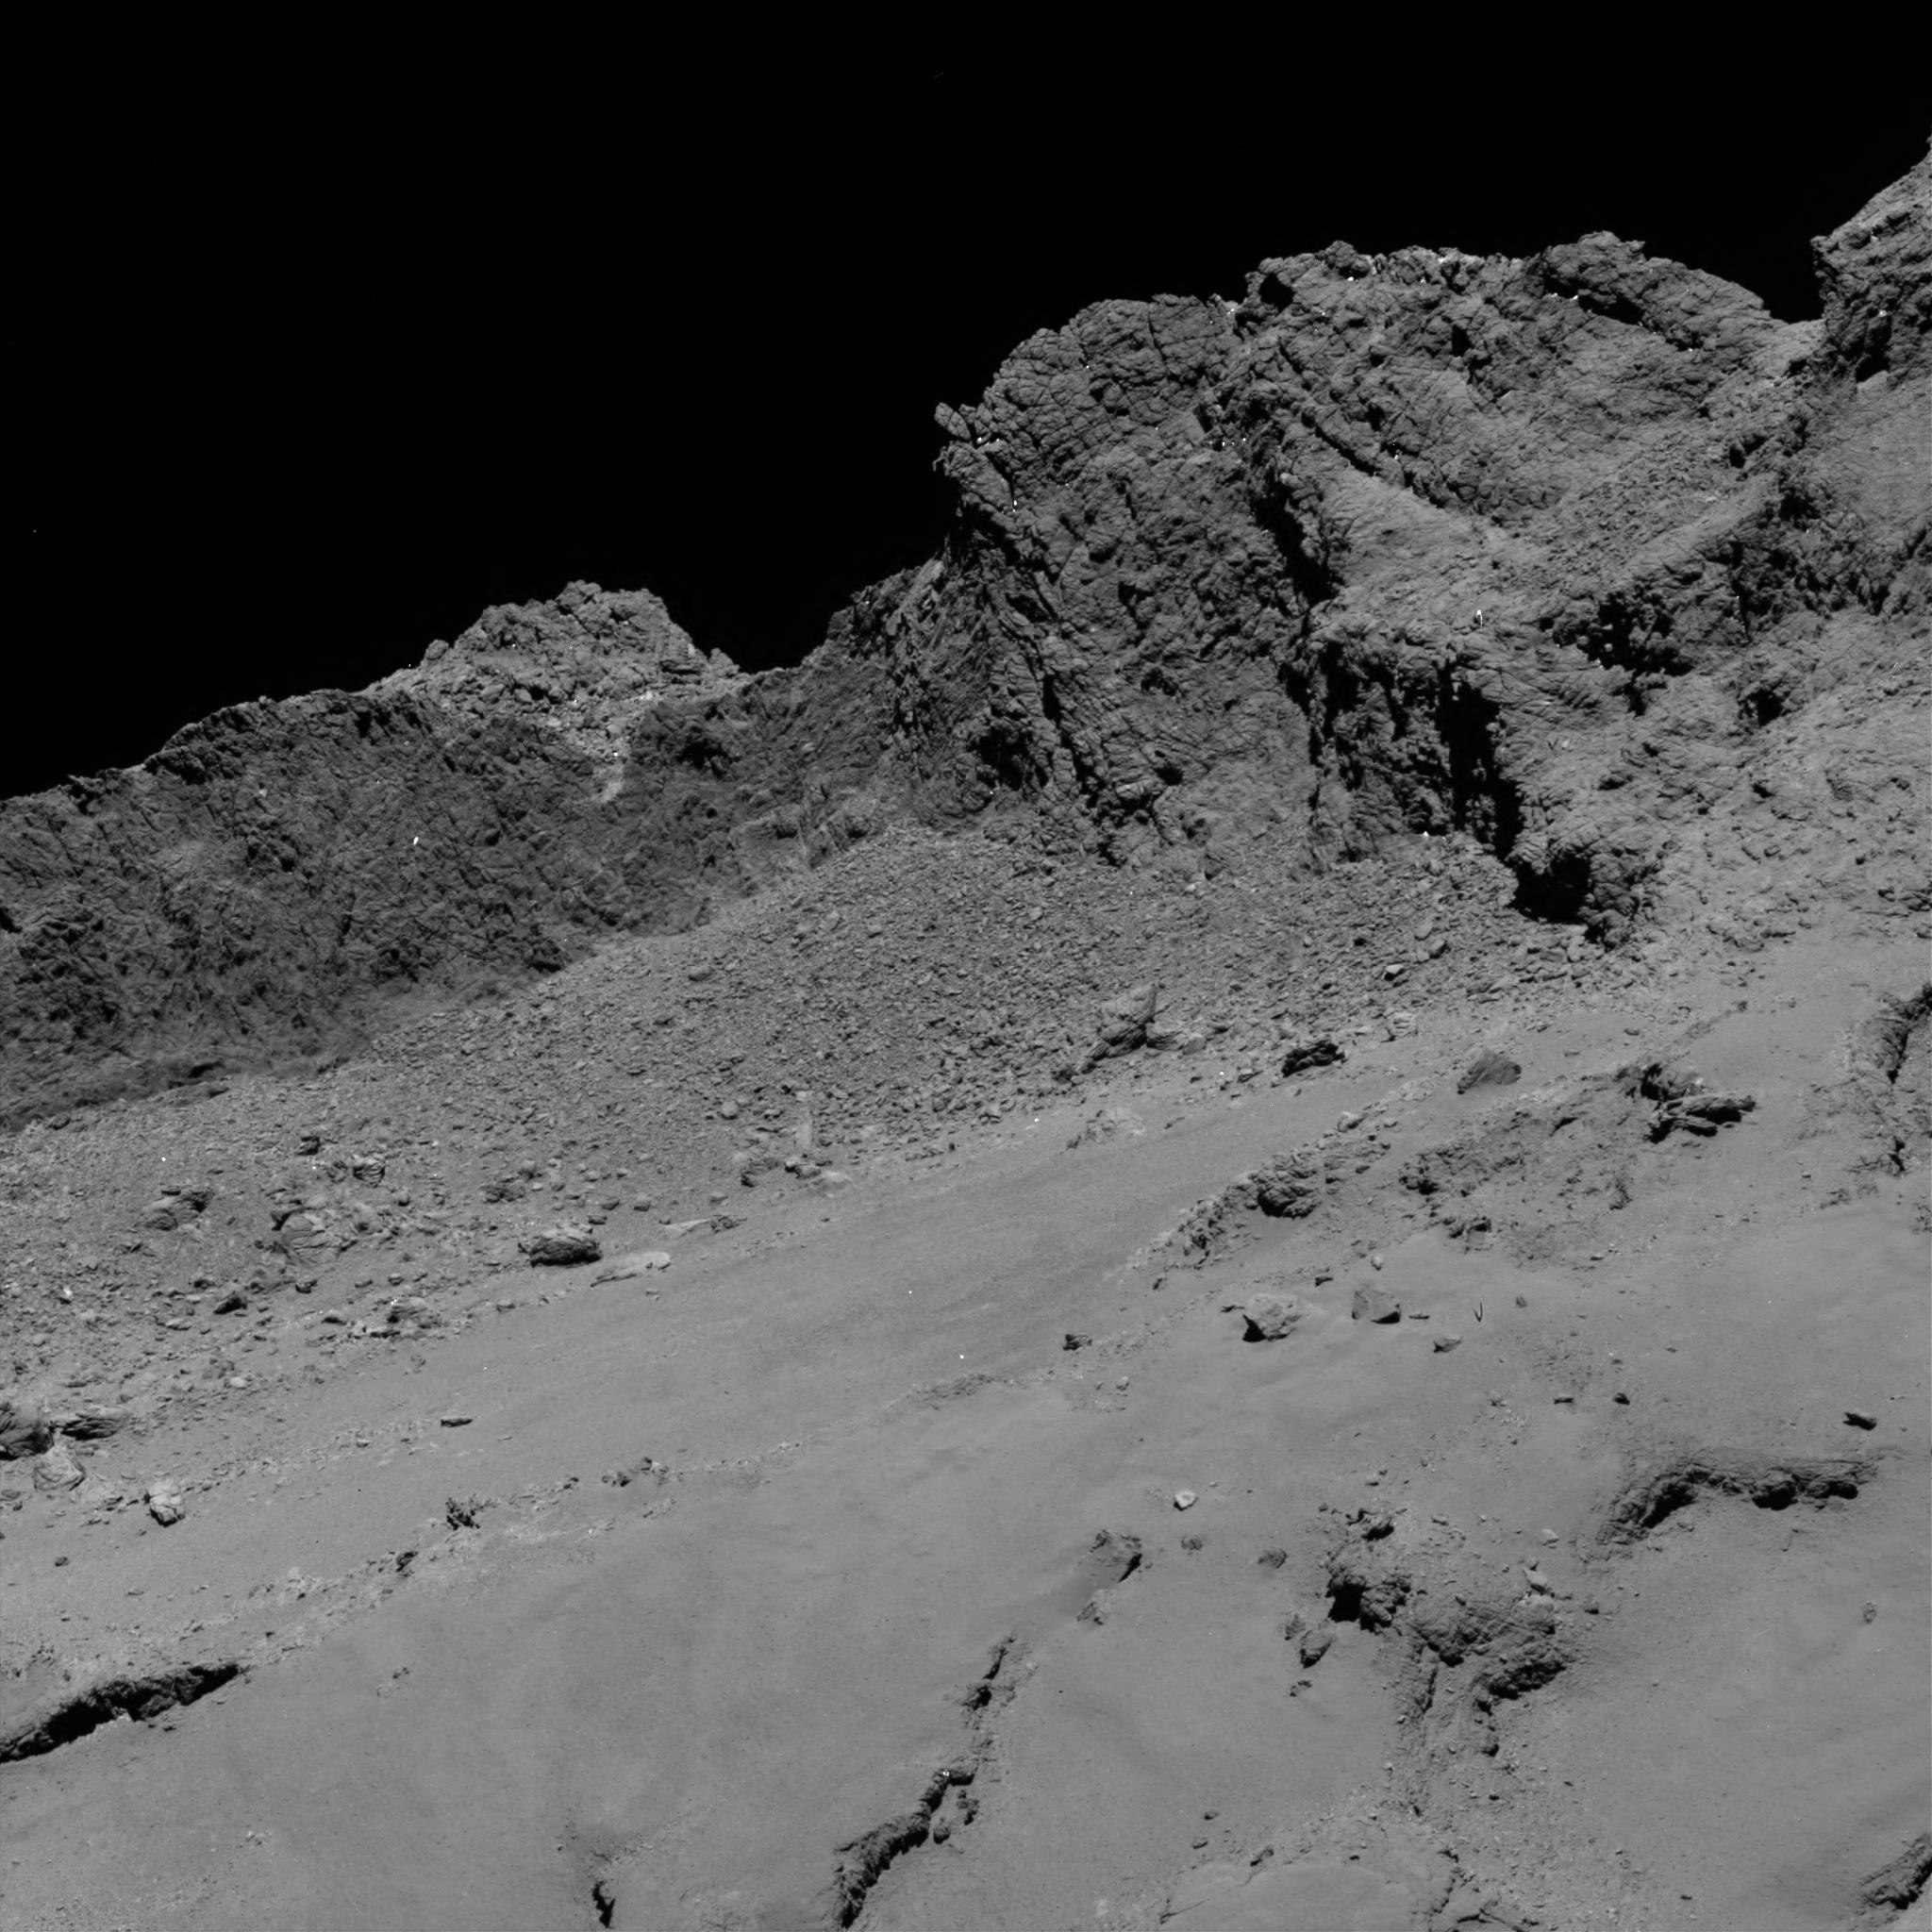 http://www.nasa.gov/sites/default/files/thumbnails/image/rosetta-homepage.jpg